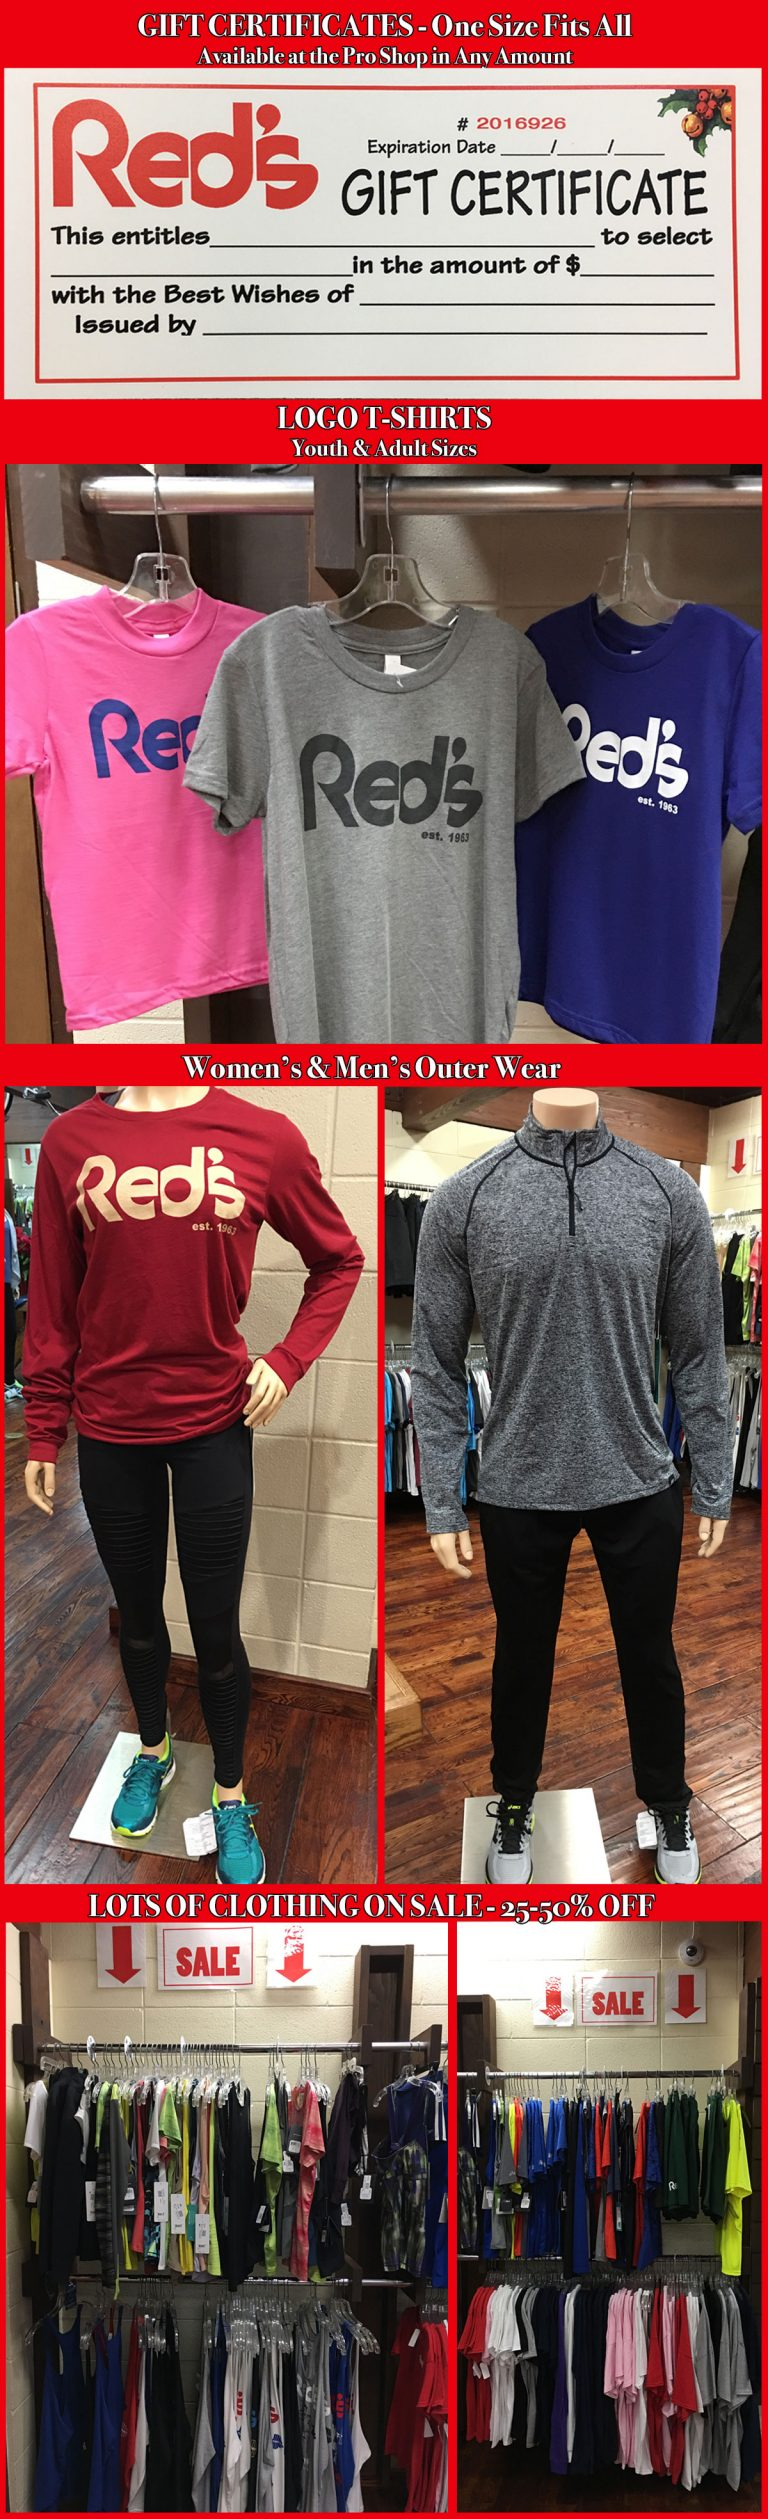 Gift Ideas at Red's